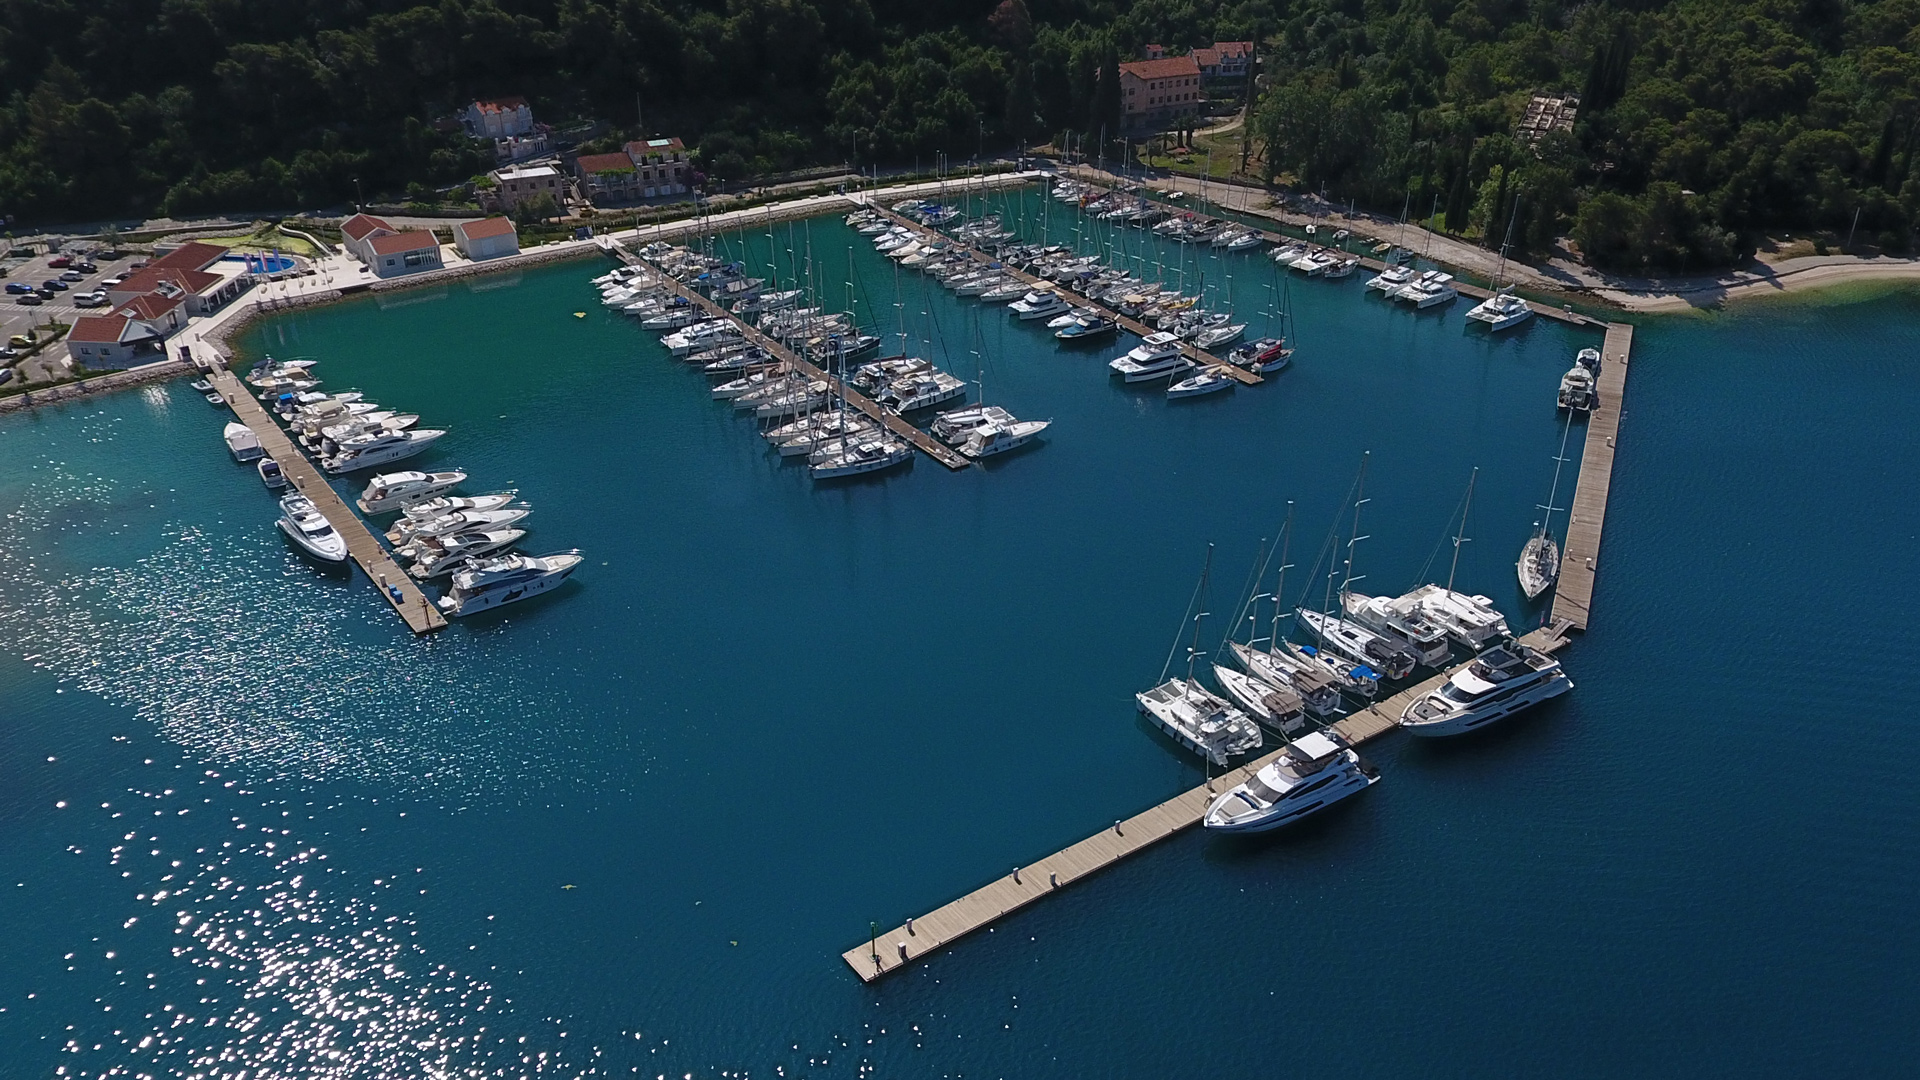 Marina in the town of Slano, the Base SimpleSail, Croatia